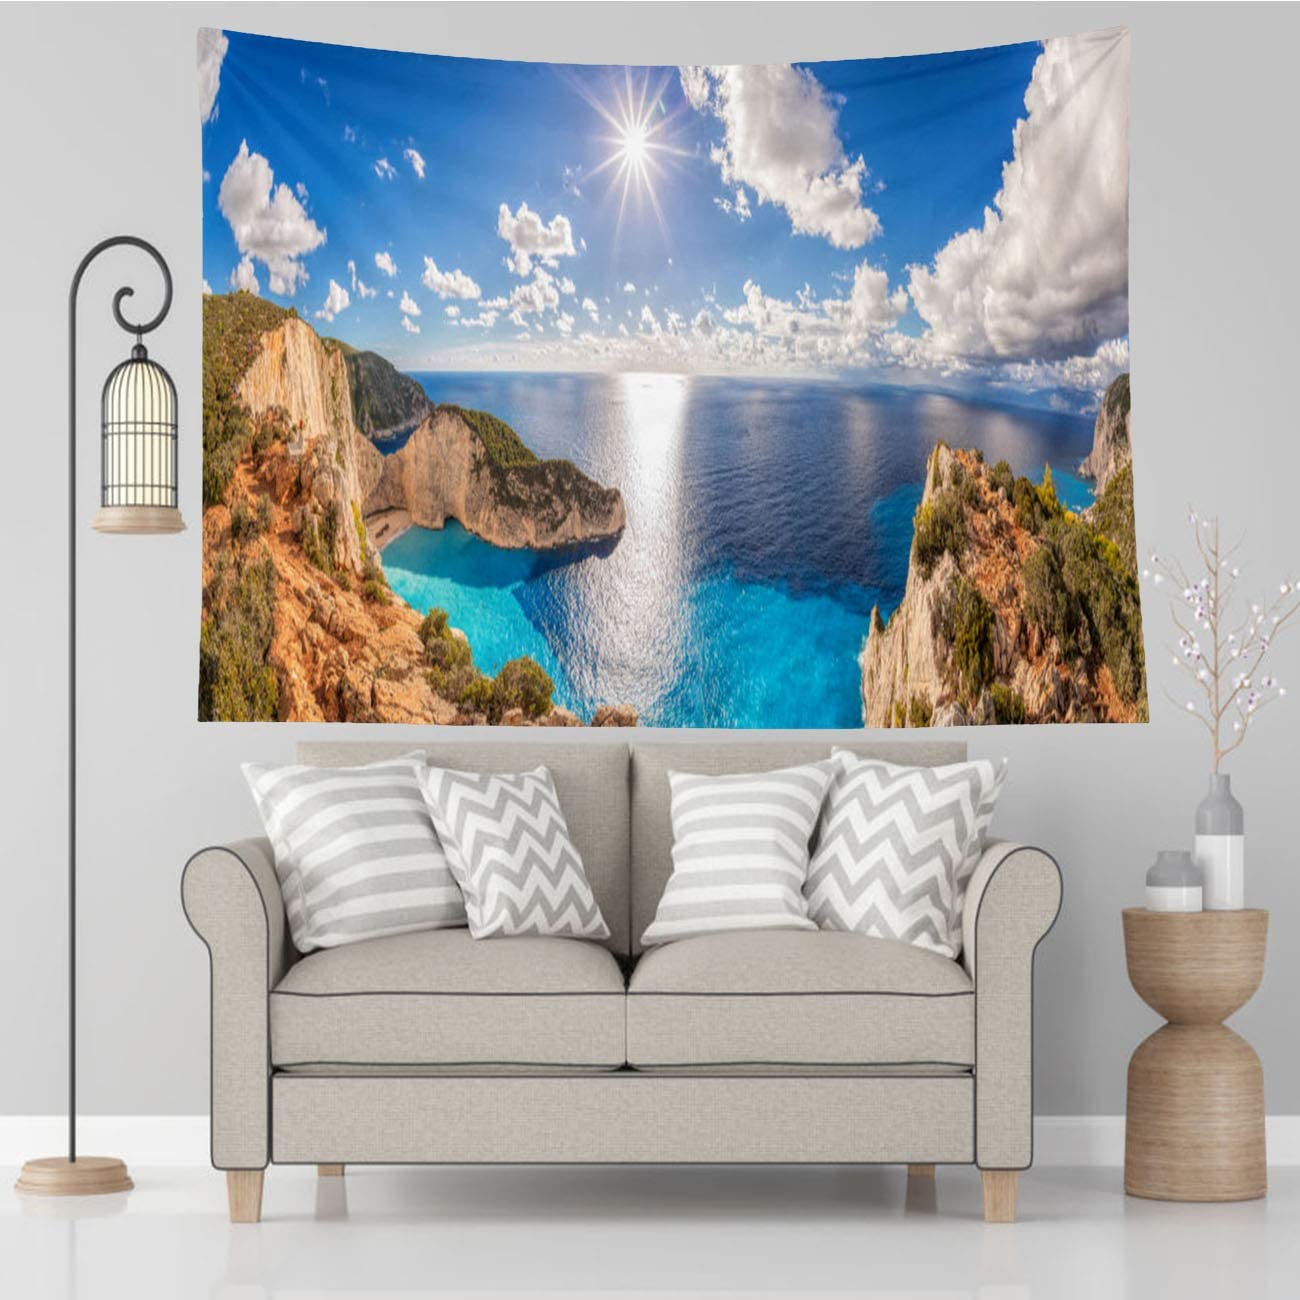 Vikes Beach Tapestry,Beautiful Beach Shipwreck Zakynthos Island Greece Blue White,Tapestry Wall Hanging Art for Living Room Bedroom Home Decor,60x40 in